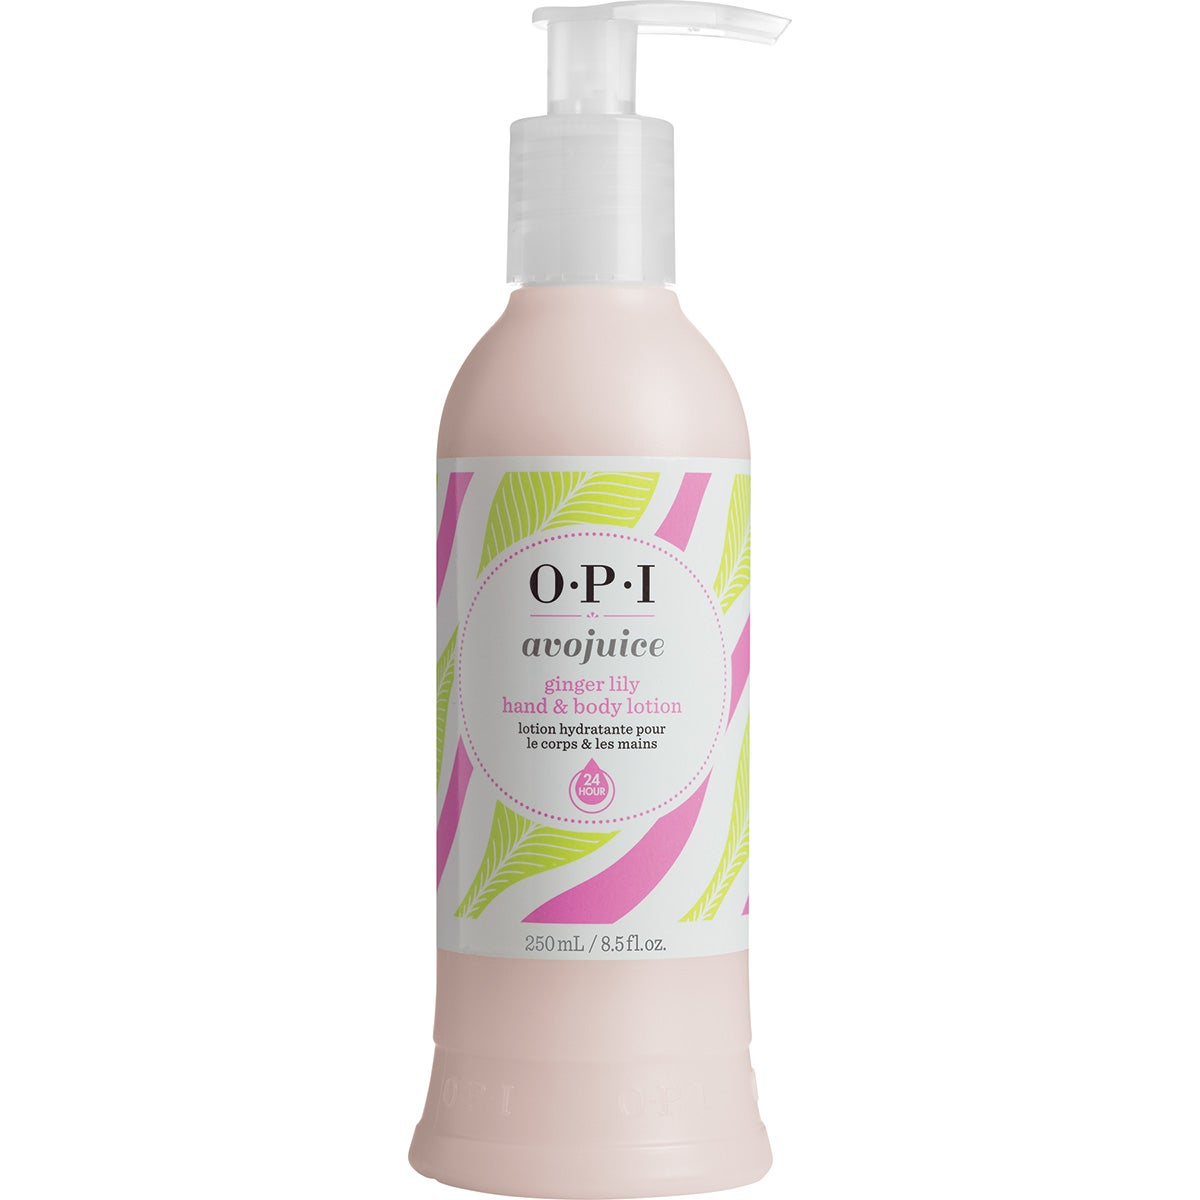 OPI AvoJuice Hand & Body Lotion, Ginger Lily